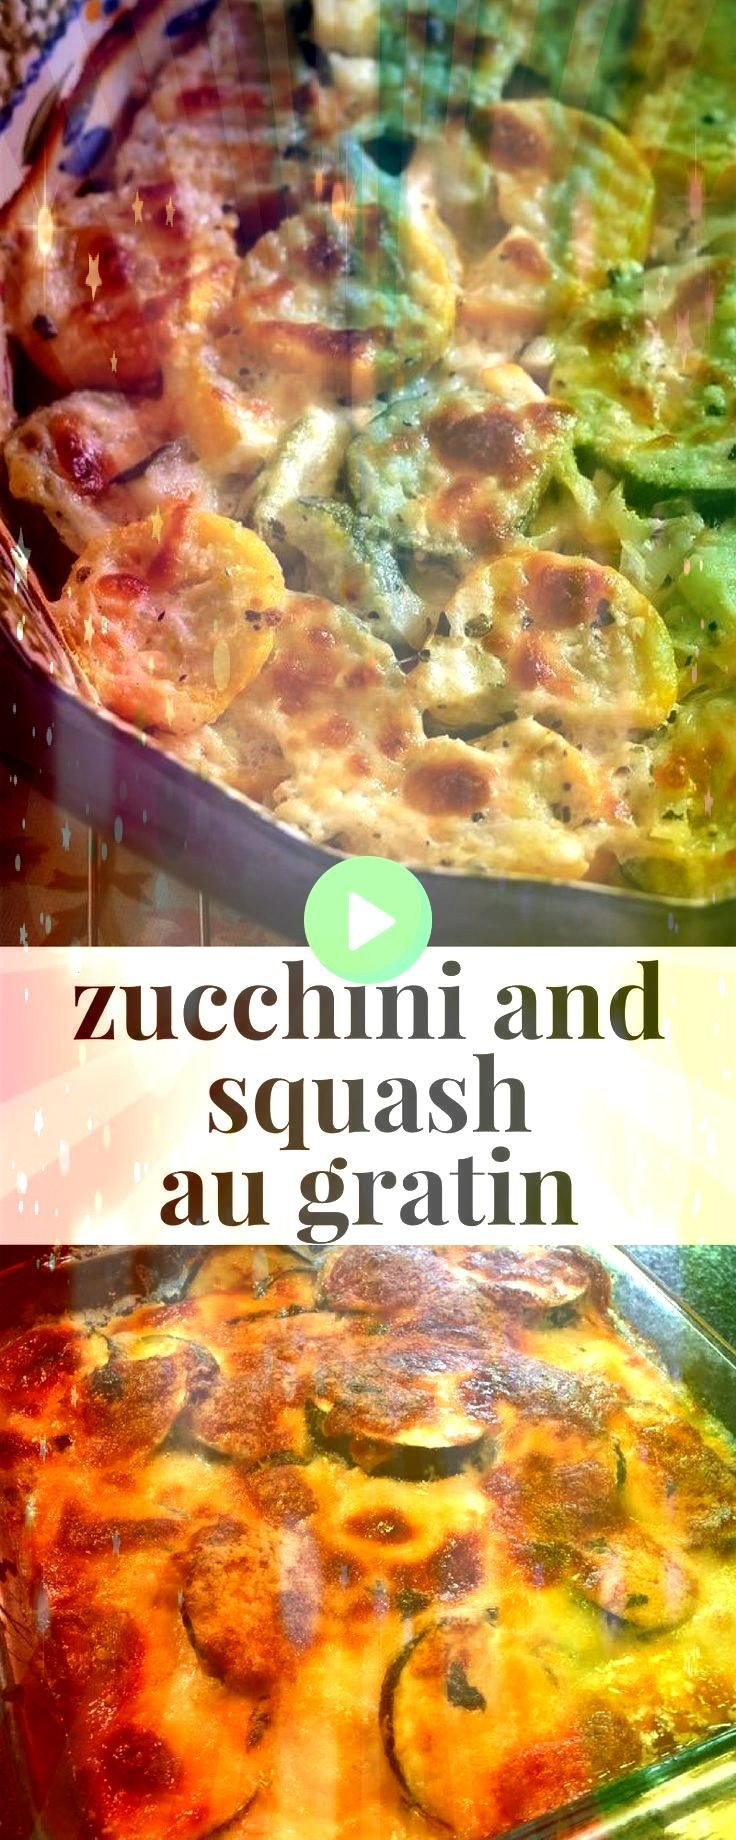 summer side dish this zucchini and squash au gratin is a delicious casseroleEasy summer side dish this zucchini and squash au gratin is a delicious casserole Wellington M...